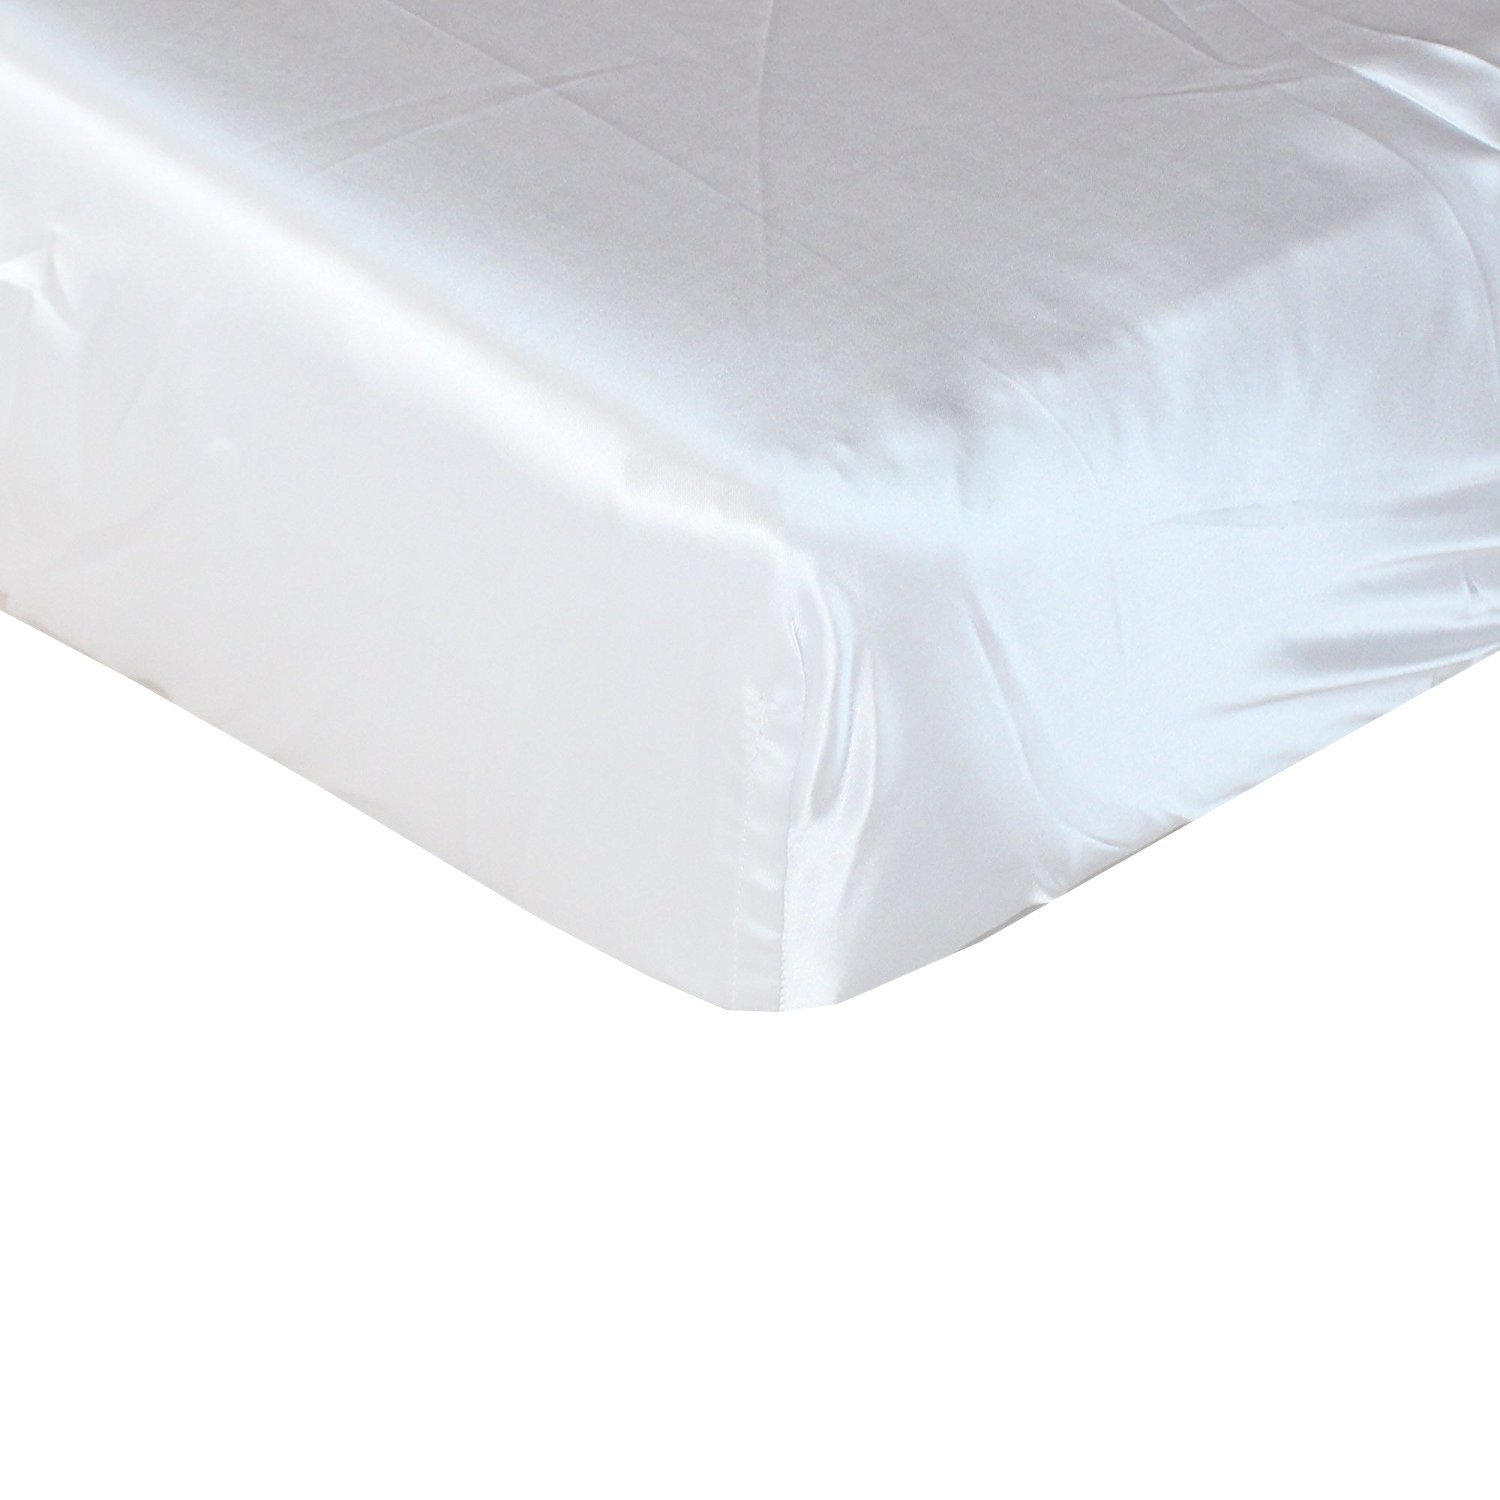 Pro Goleem Satin Soft Crib Sheet Great for Baby with Sensitive Hair Silky Baby Mattress Sheet Gray Unisex 52/'/'x28/'/'x8/'/' Fitted Sheet